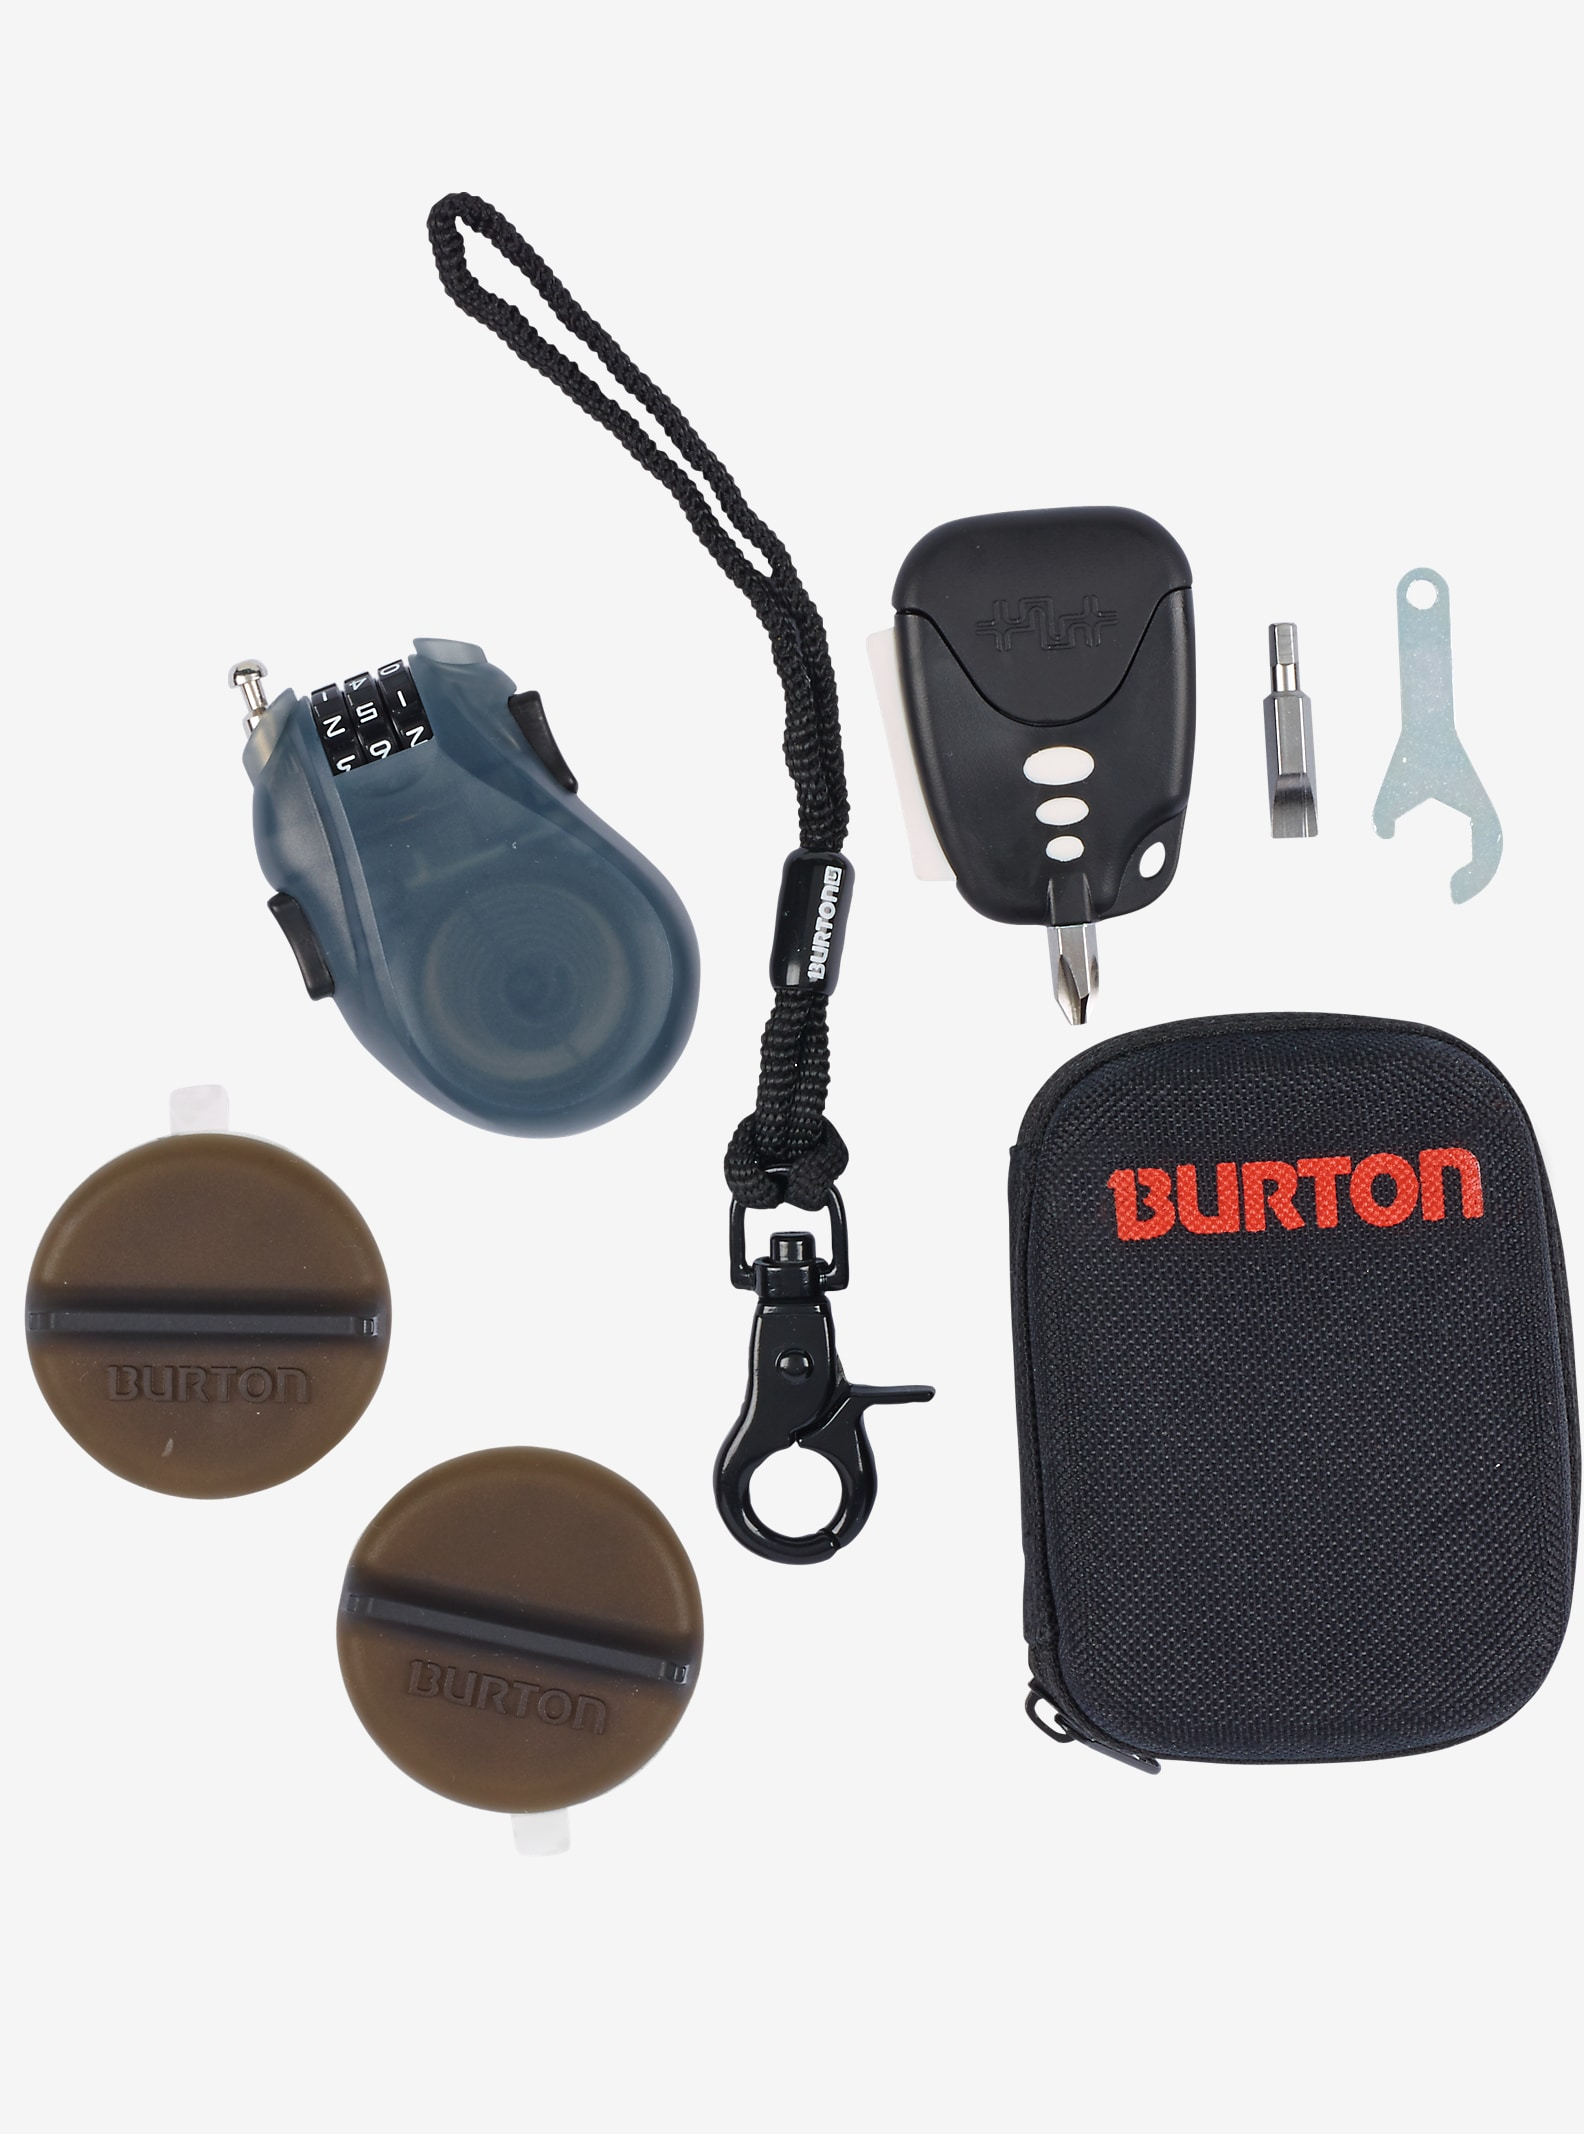 Burton Starter Kit shown in Black